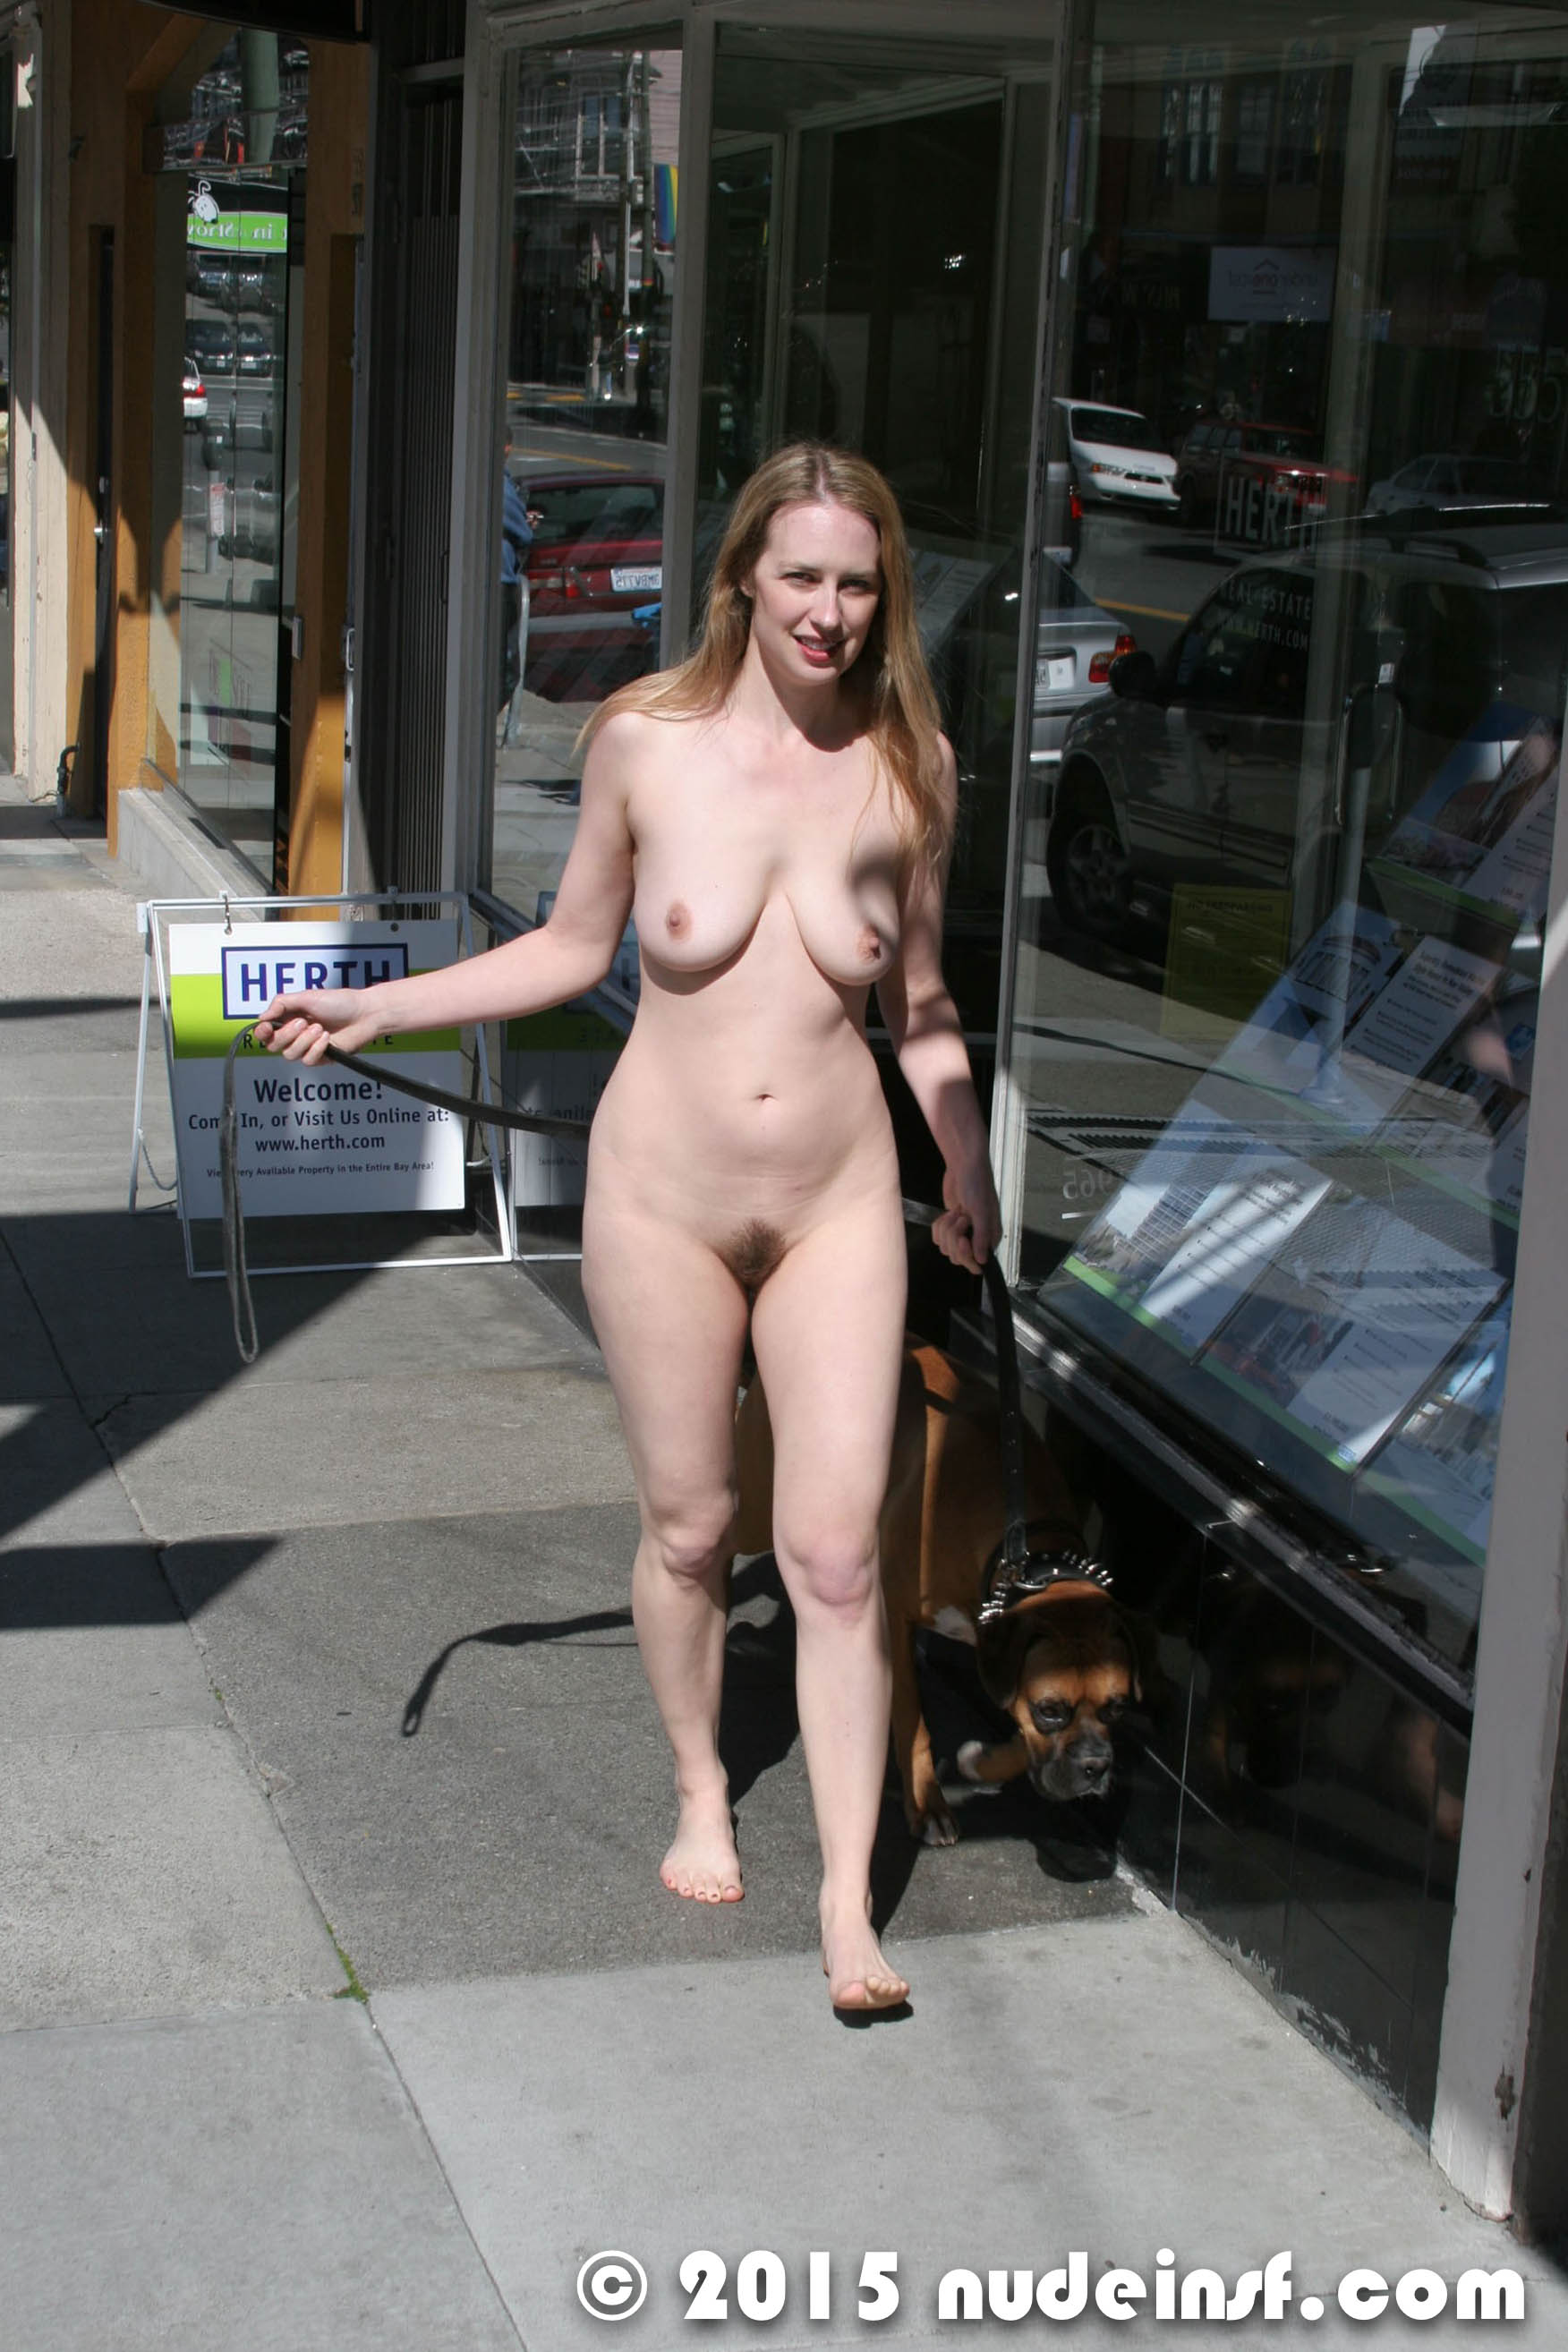 Leila - Public nudity in San Francisco California